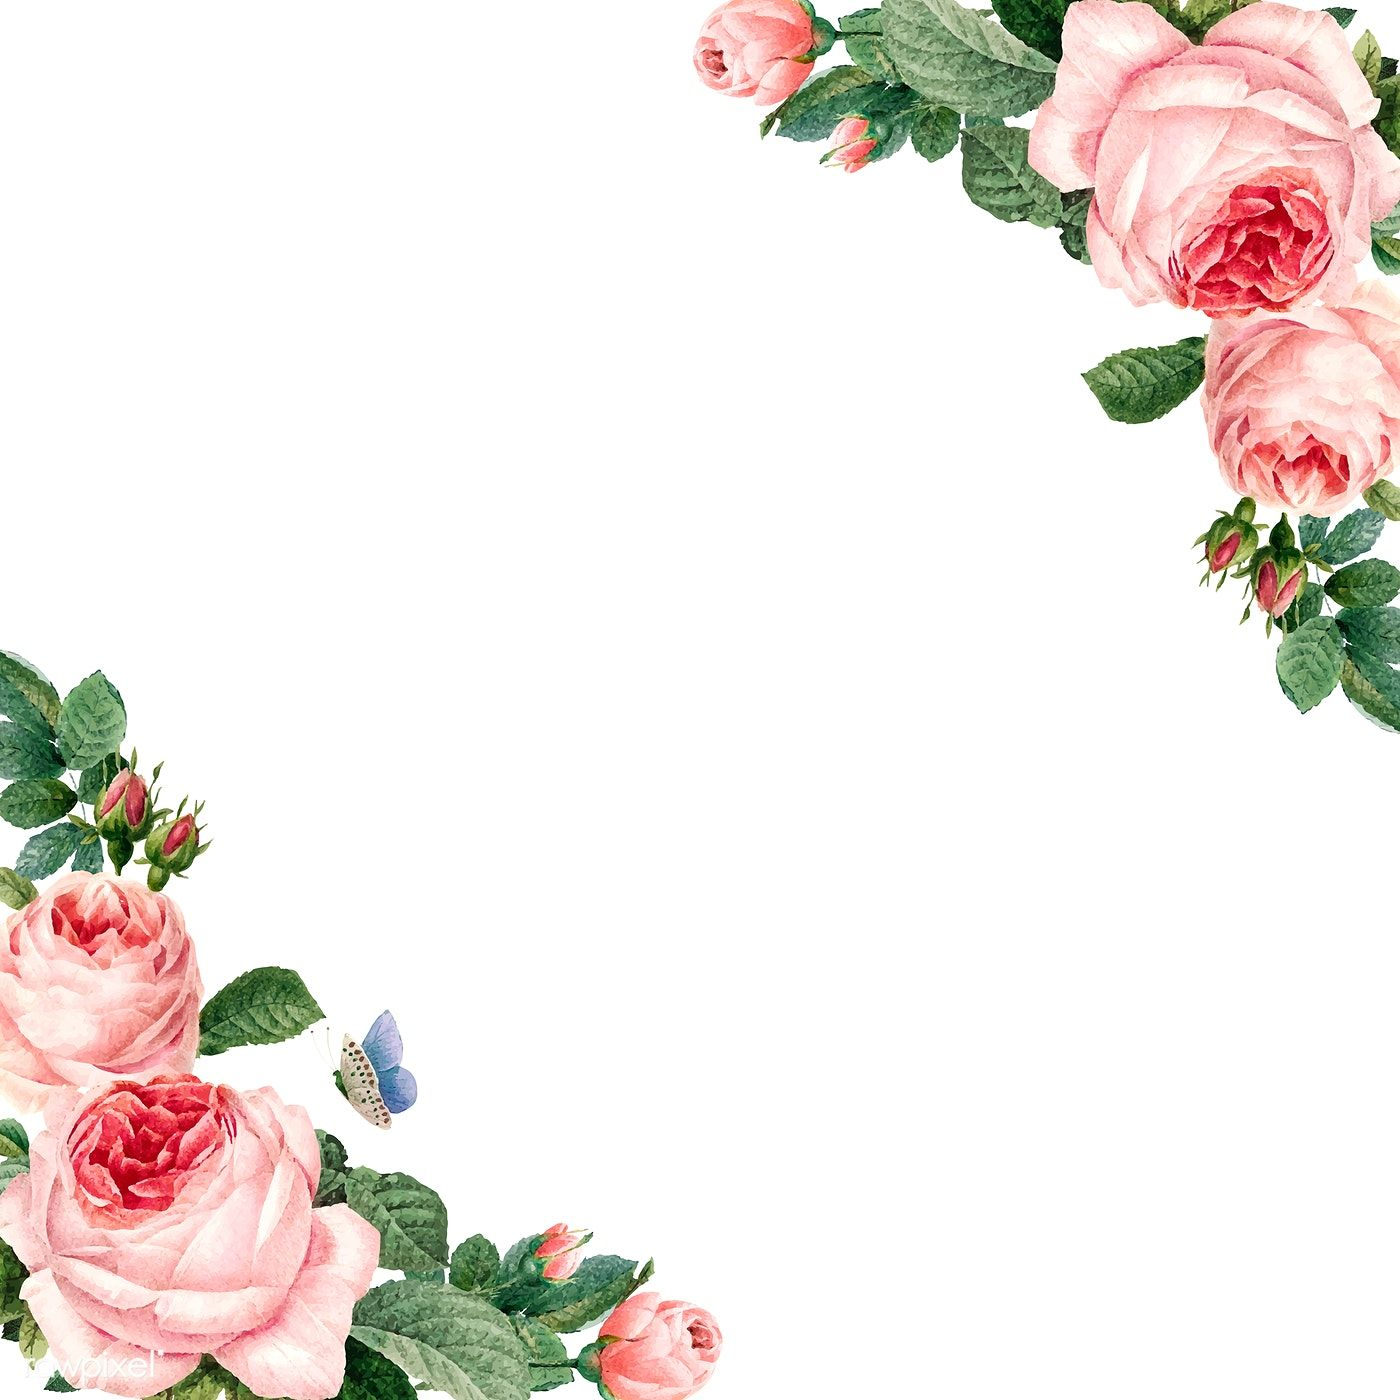 Hand Drawn Pink Roses Frame On White Background Vector Free Image By Rawpixel Com Busbus Rose Frame How To Draw Hands Pink Background